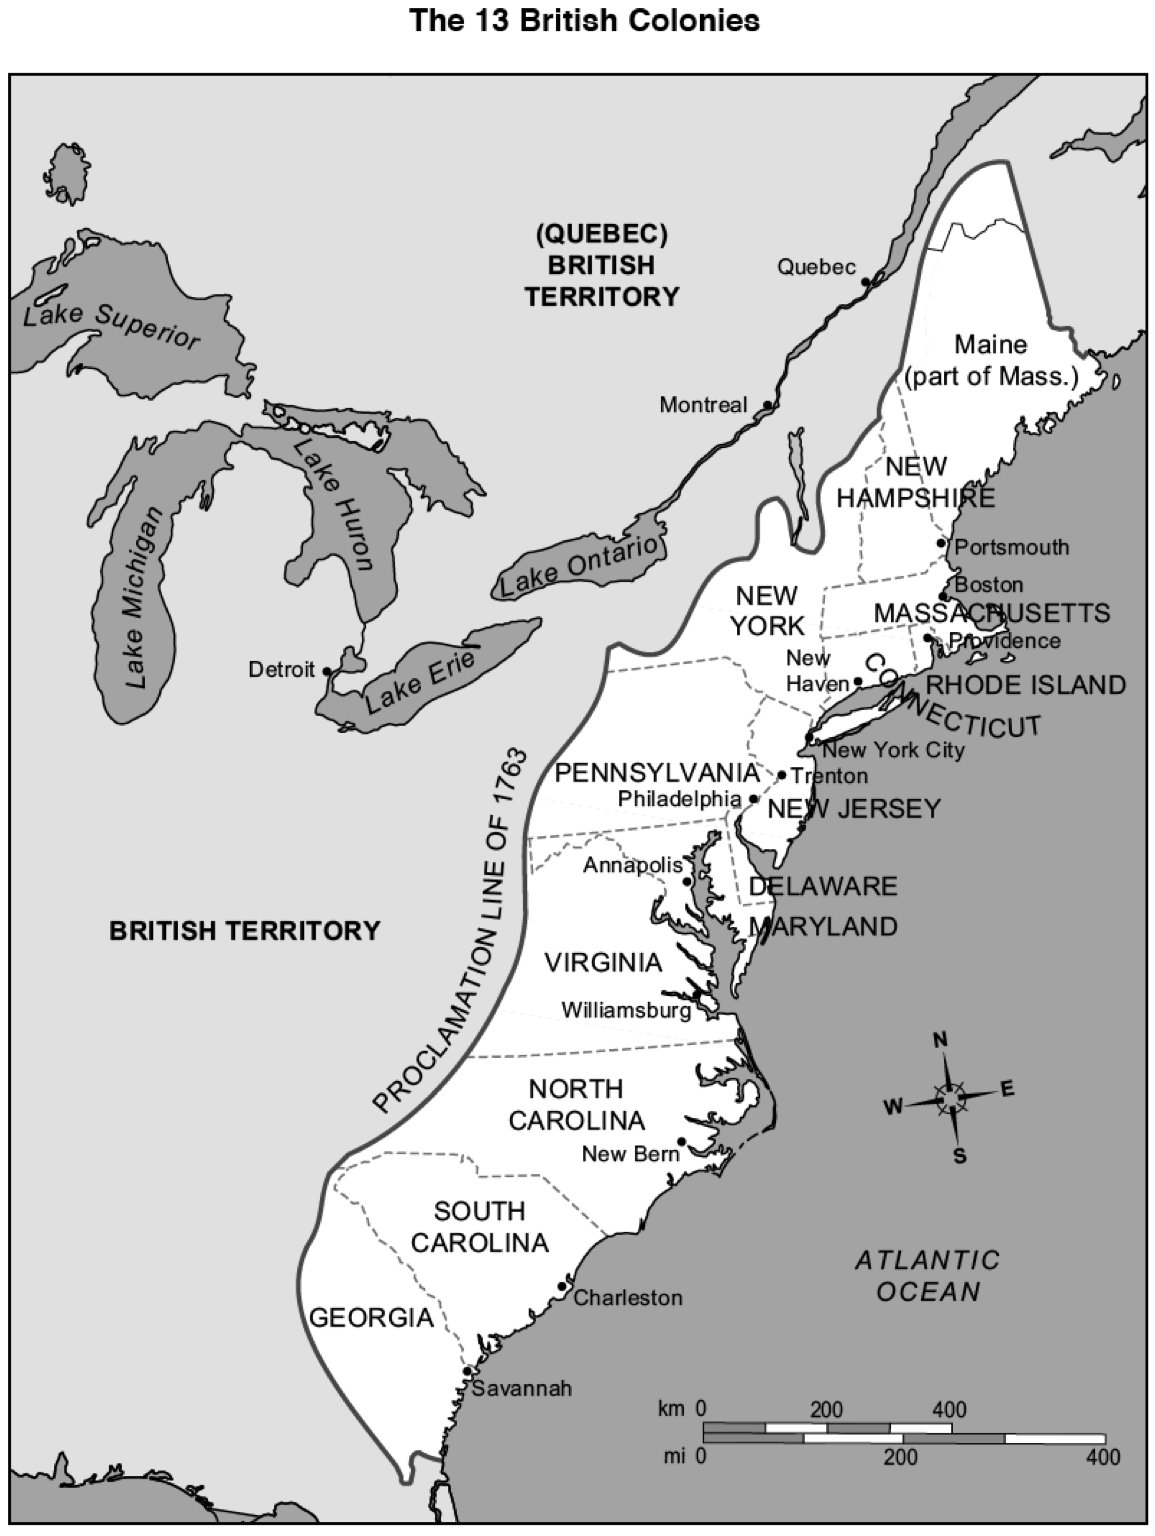 13 colonies map - Google Search   13 colonies map [ 1536 x 1155 Pixel ]